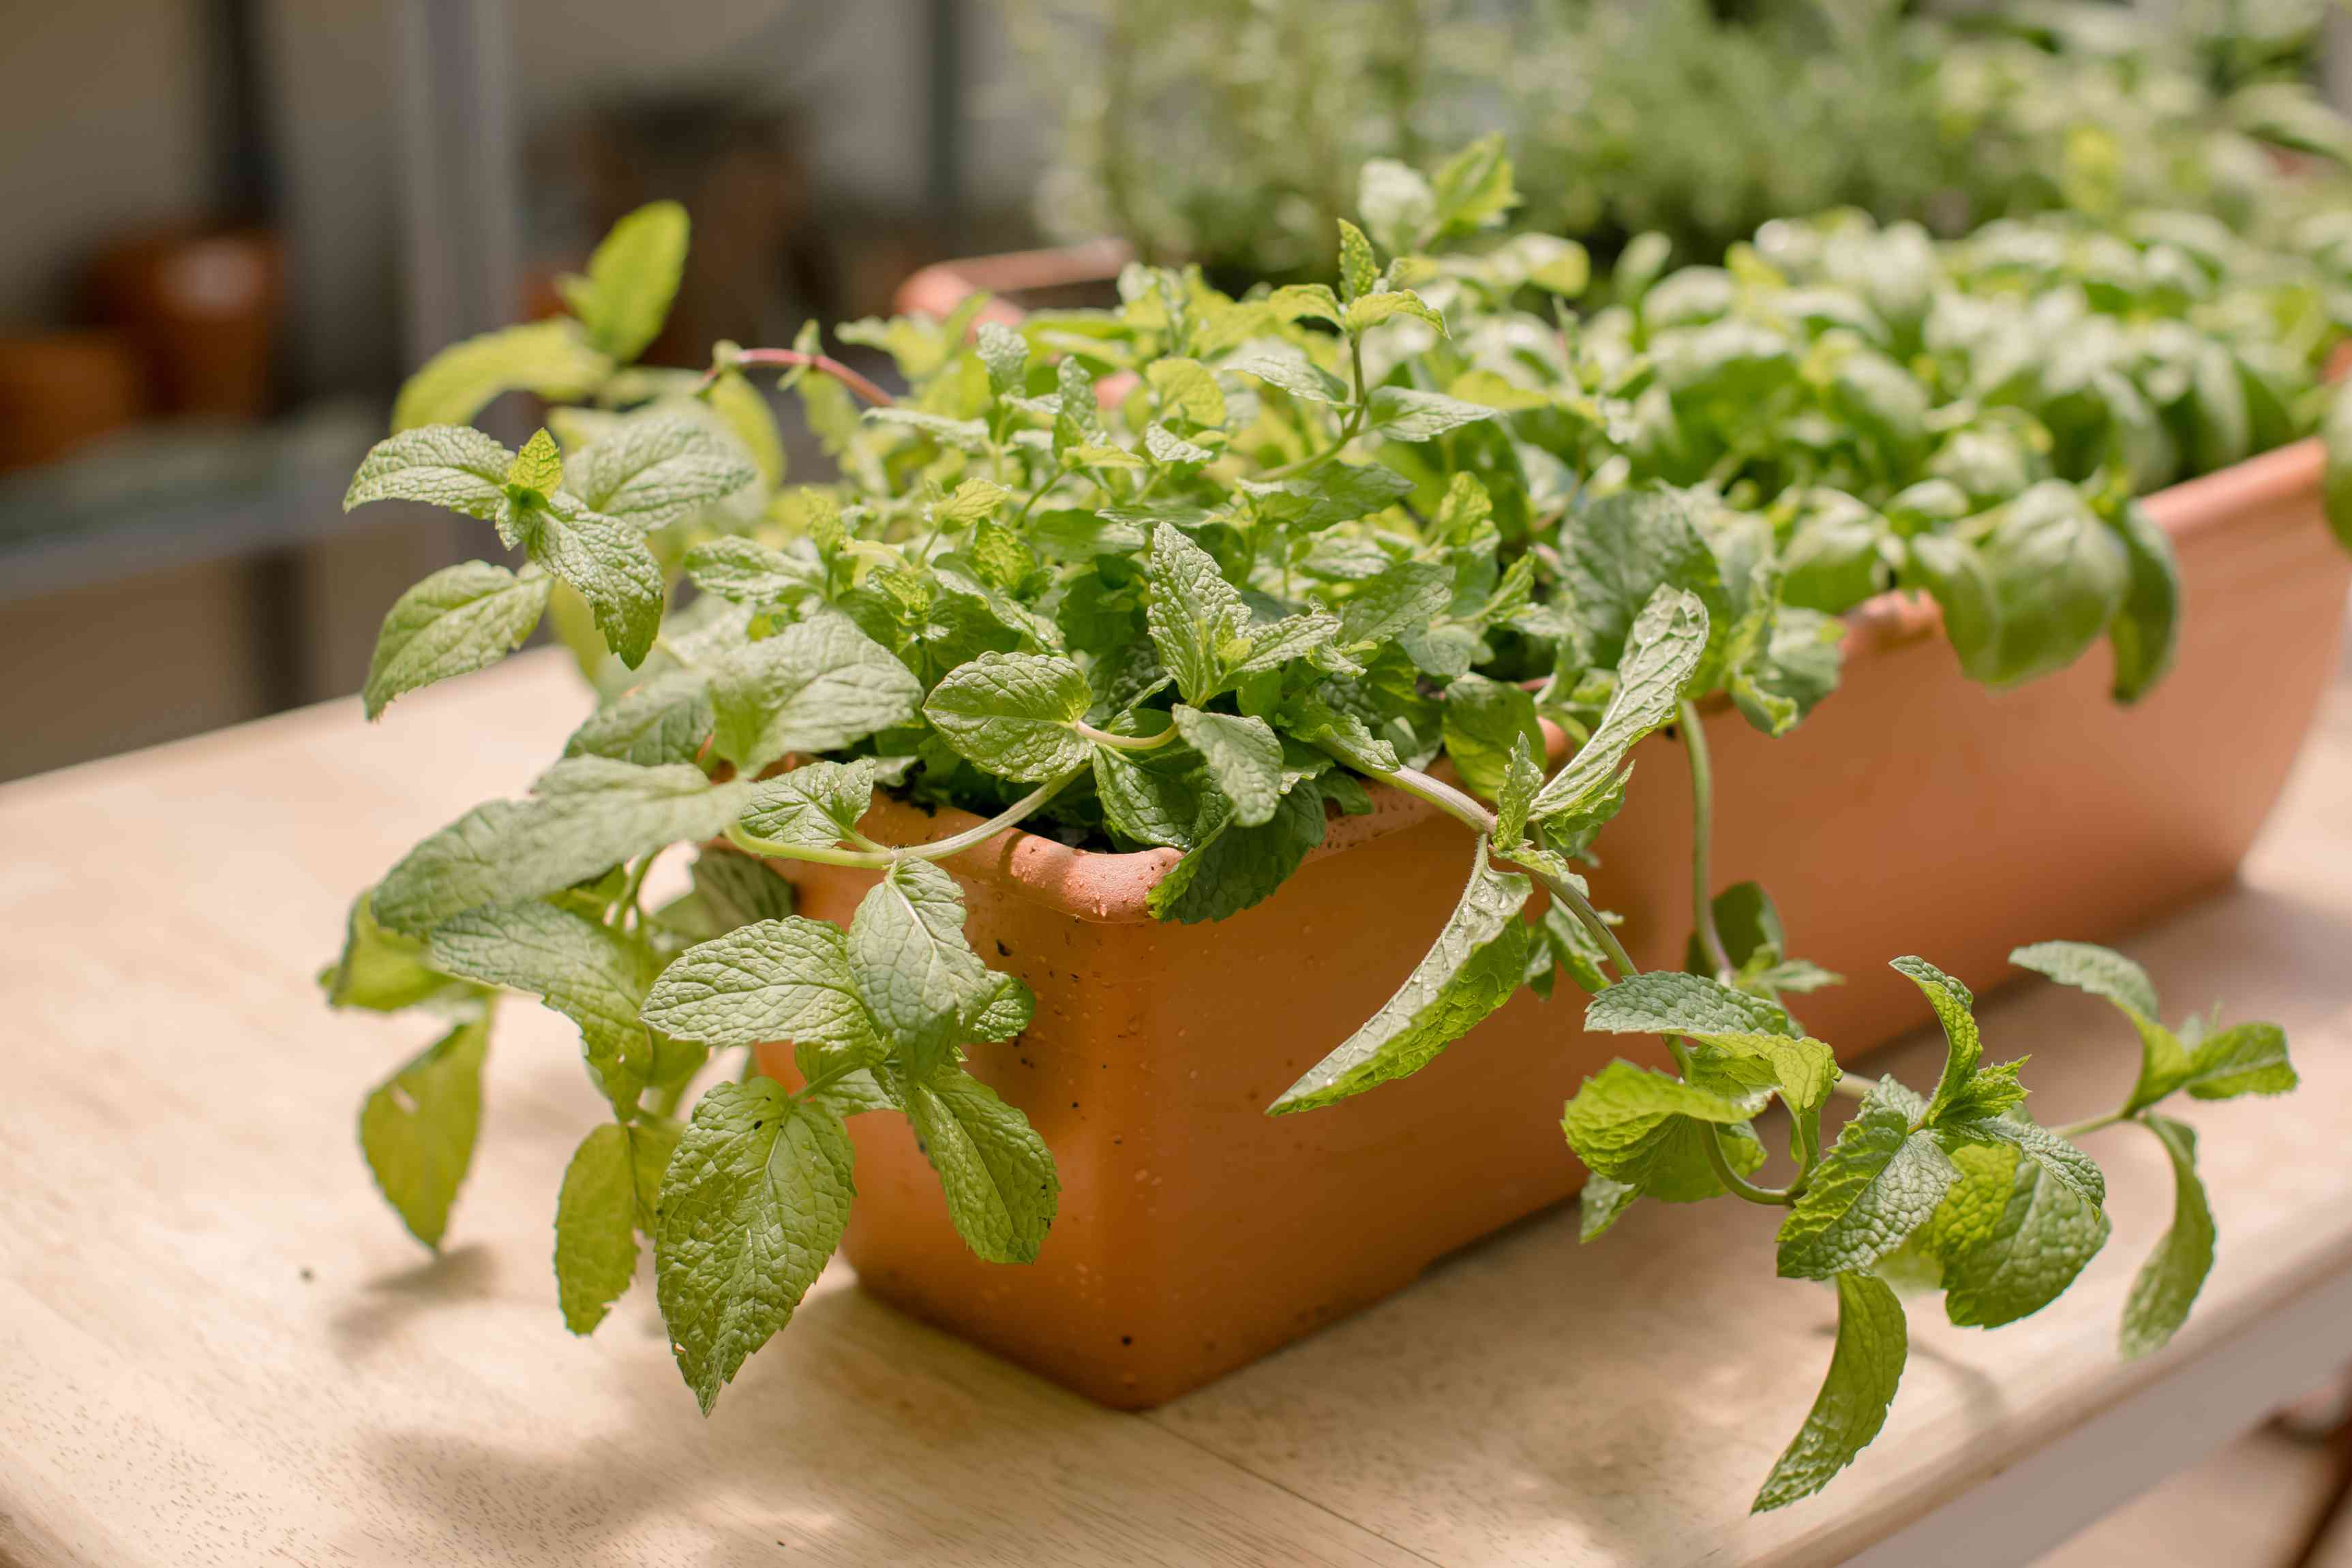 mint growing in a planter